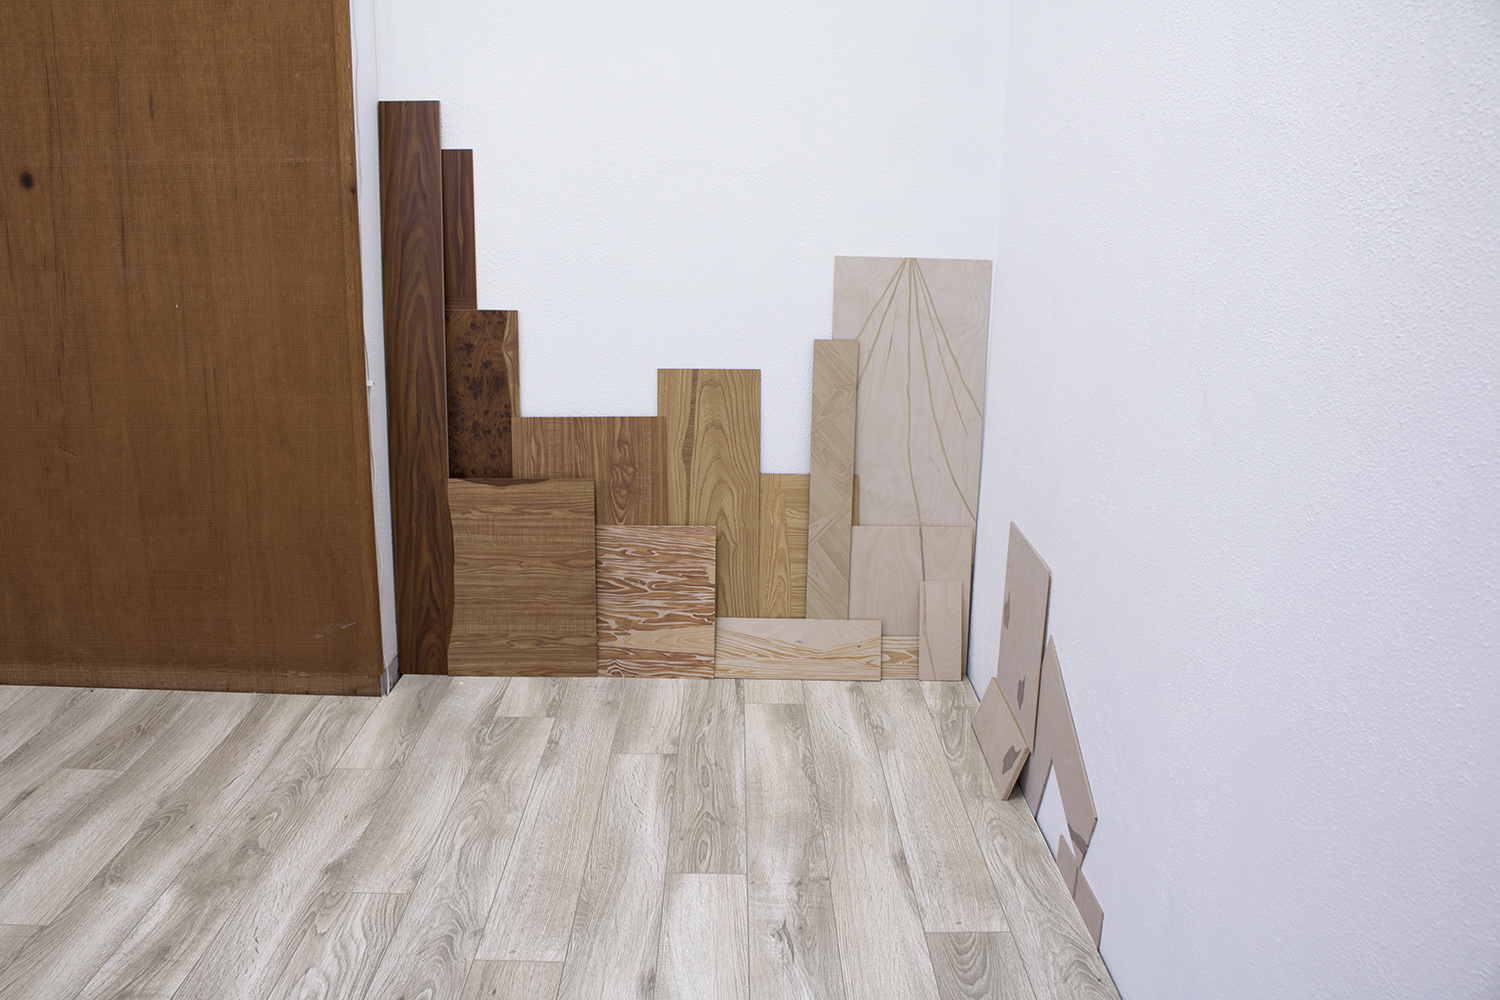 Masquetry V  (detail), 2014–2018 Adhesive vinyl on found laminate and wood Dimensions variable